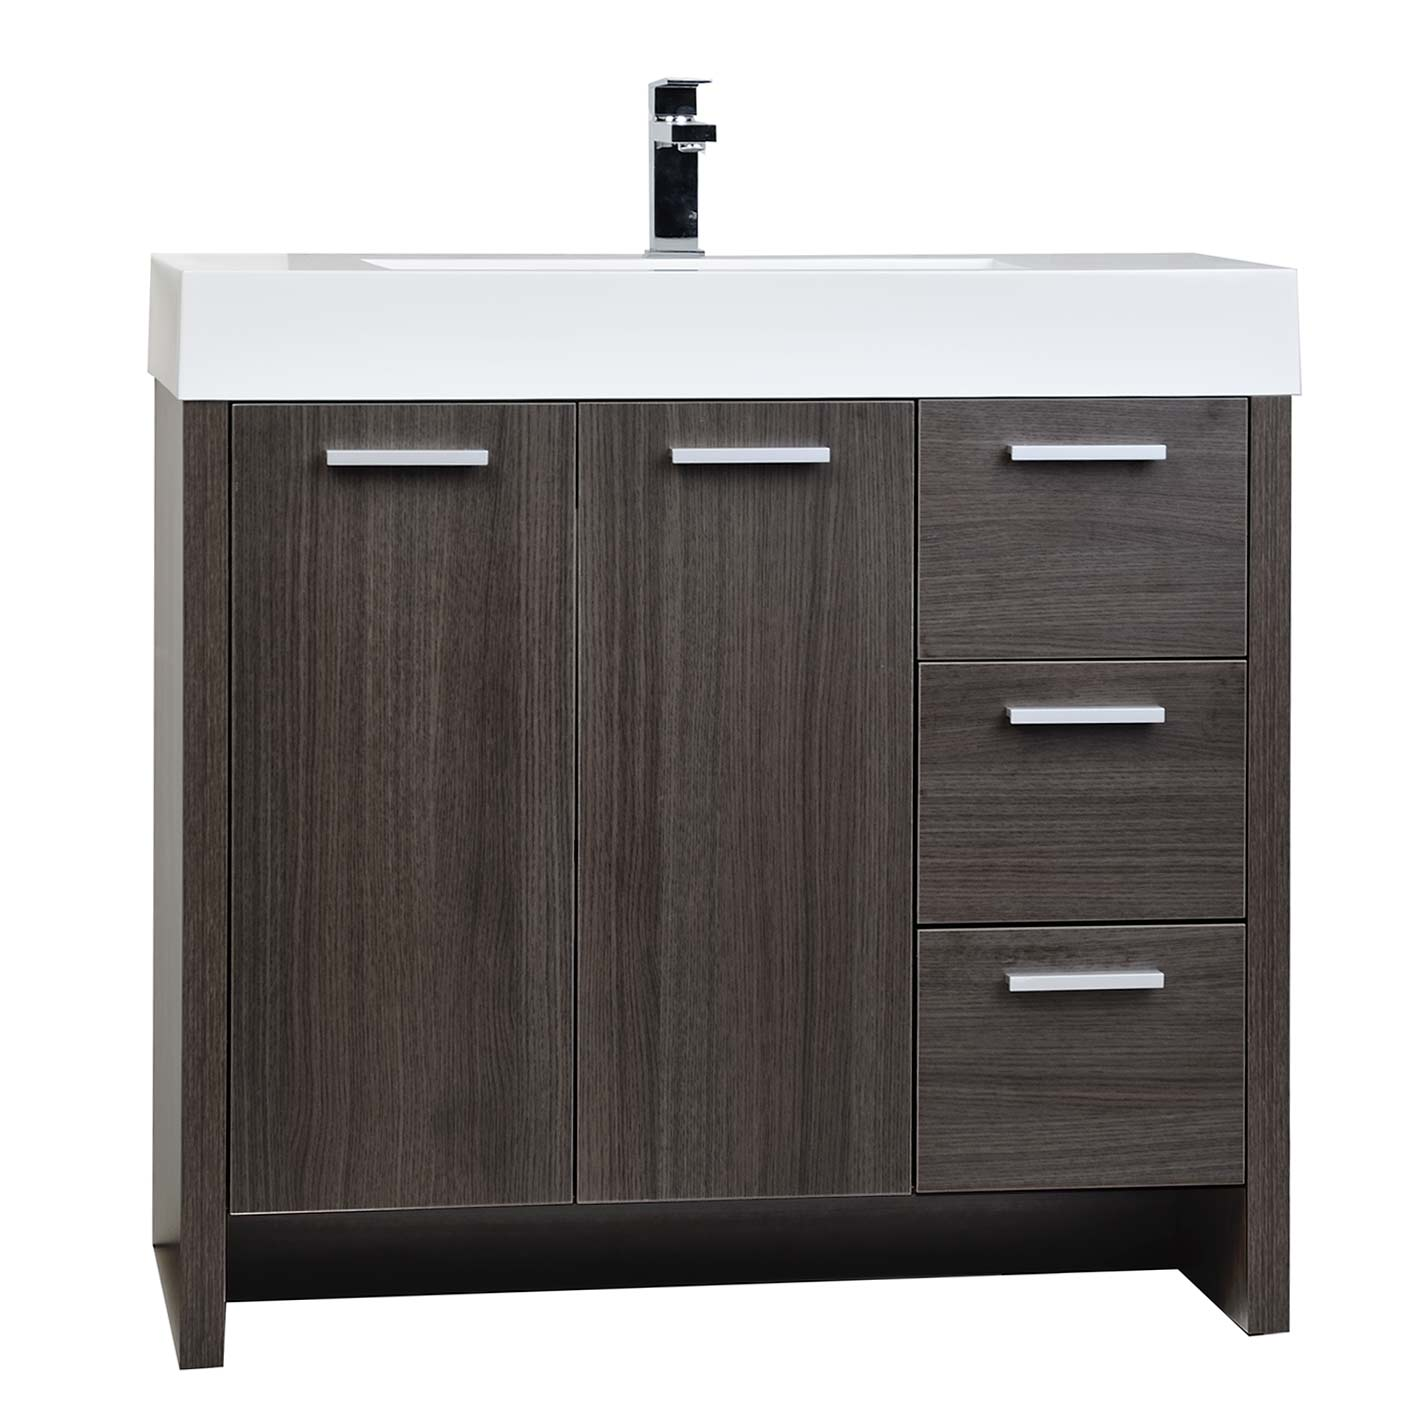 Buy 35 5 modern bathroom vanity grey oak finish tn ly900 for Restroom vanity